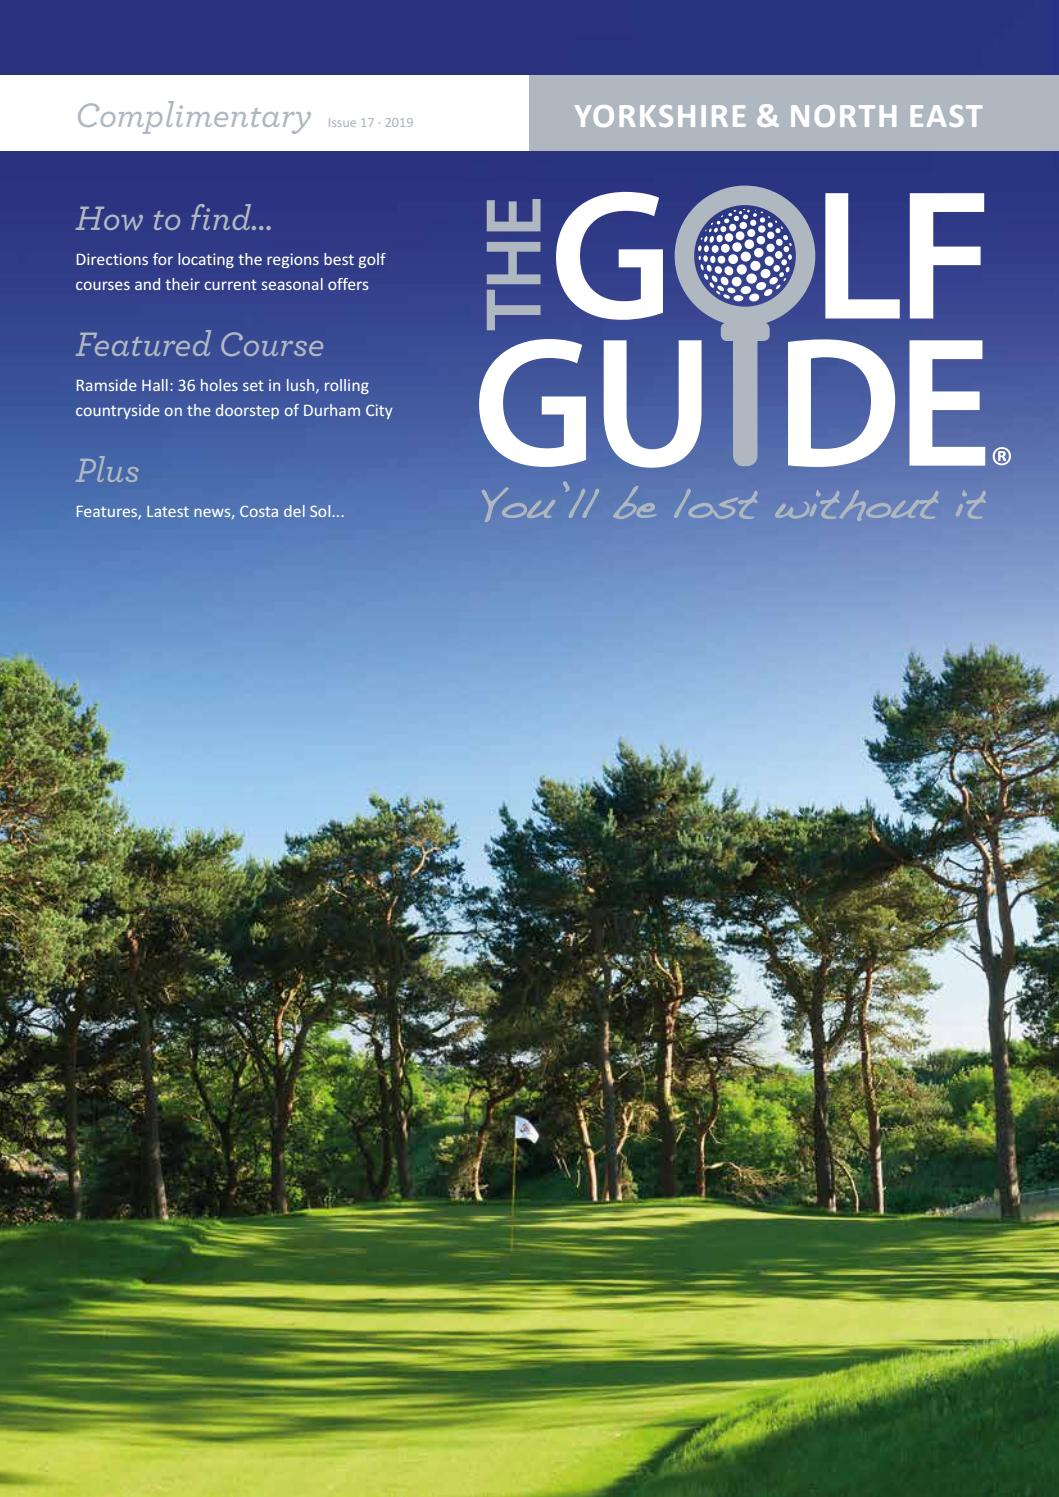 Yorkshire & North East Golf Guide Issue 17 by The Golf Guide